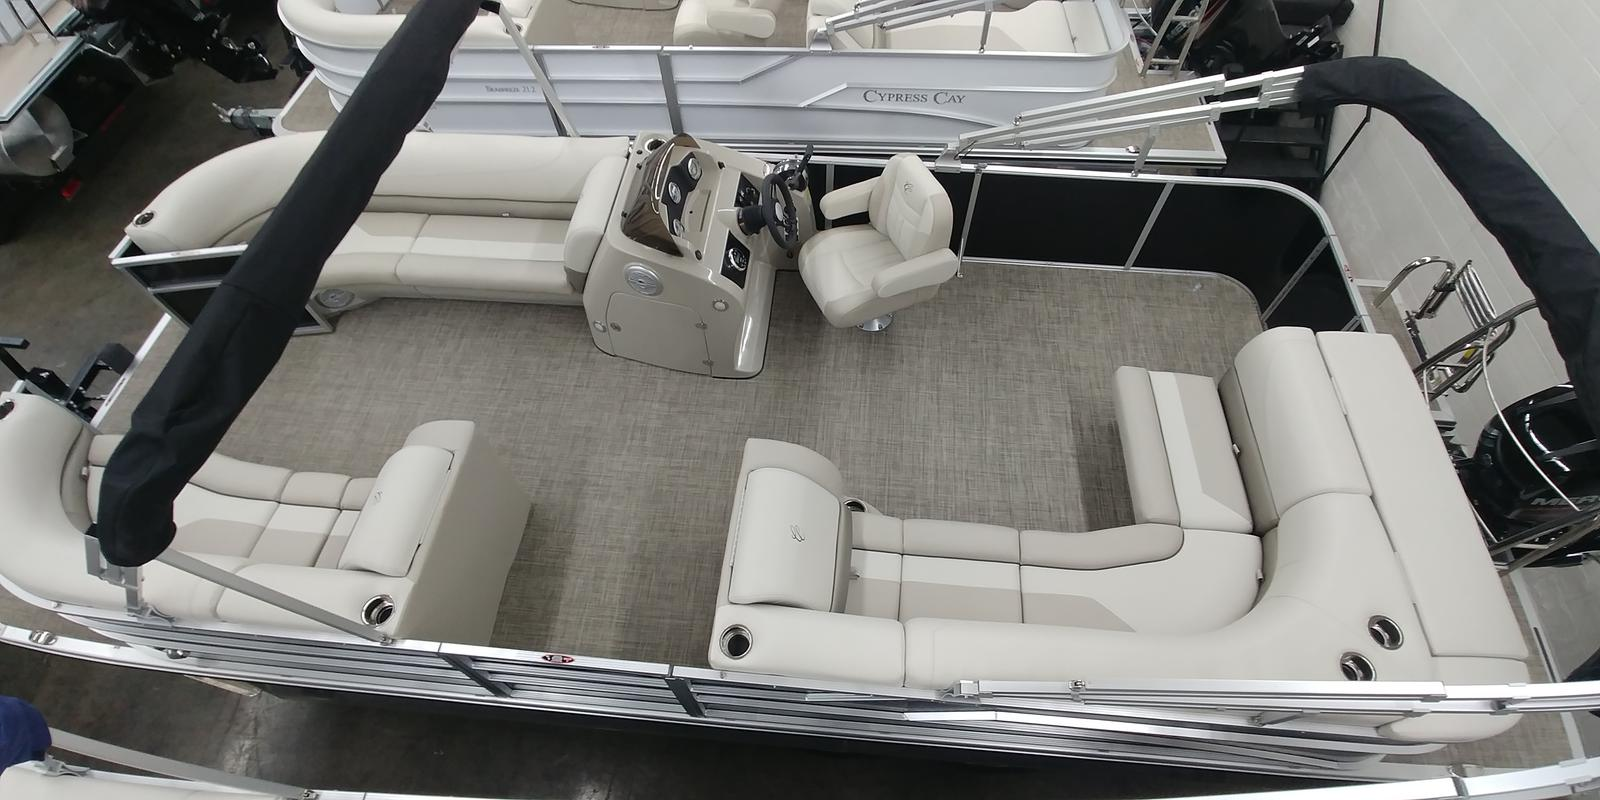 2019 Cypress Cay boat for sale, model of the boat is 232Seabreeze CST & Image # 2 of 6